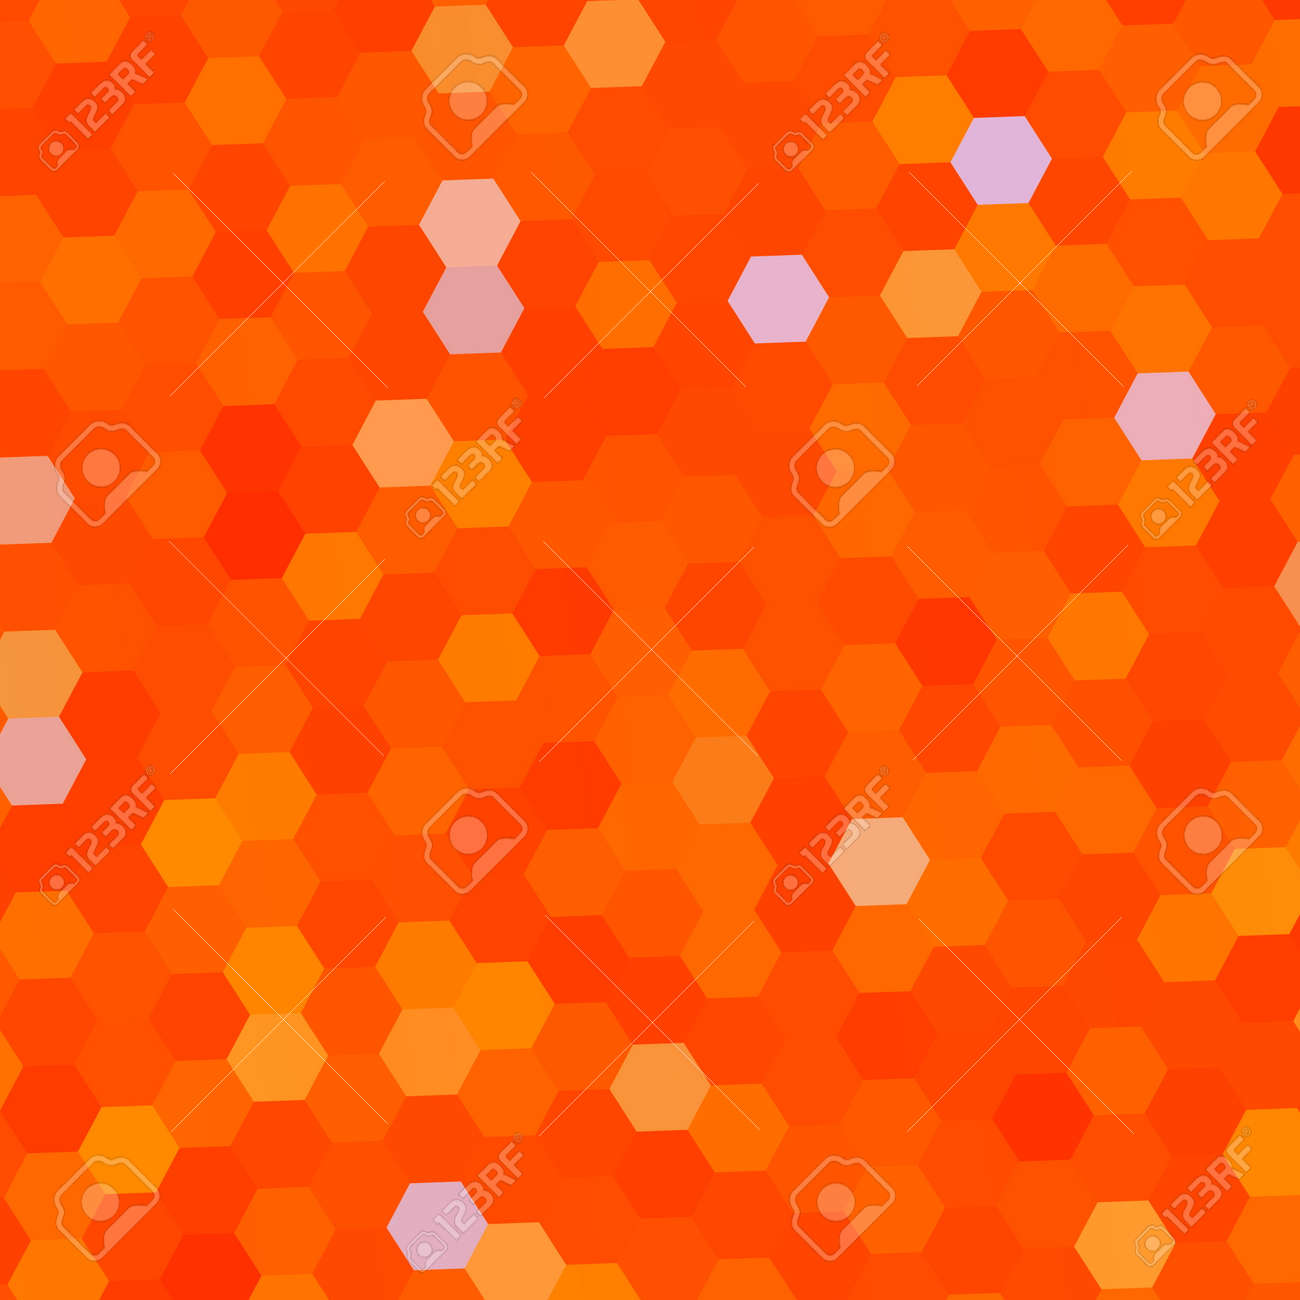 abstract background with orange color pattern business card stock